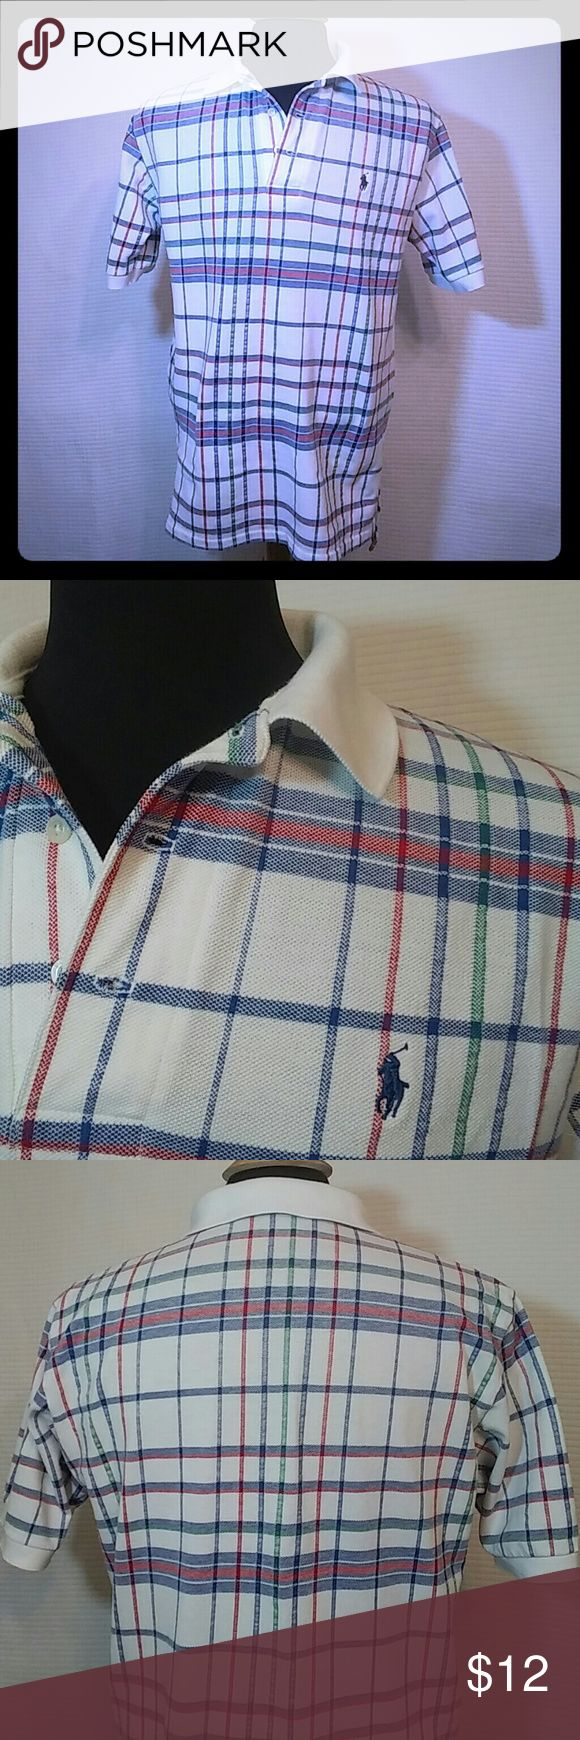 Polo by Ralph Lauren  shirt. It's a man's (Ralph Lauren Polo Shirt) Multi-color checkered shirt. Size-M in great condition. Ralph Lauren Shirts Polos